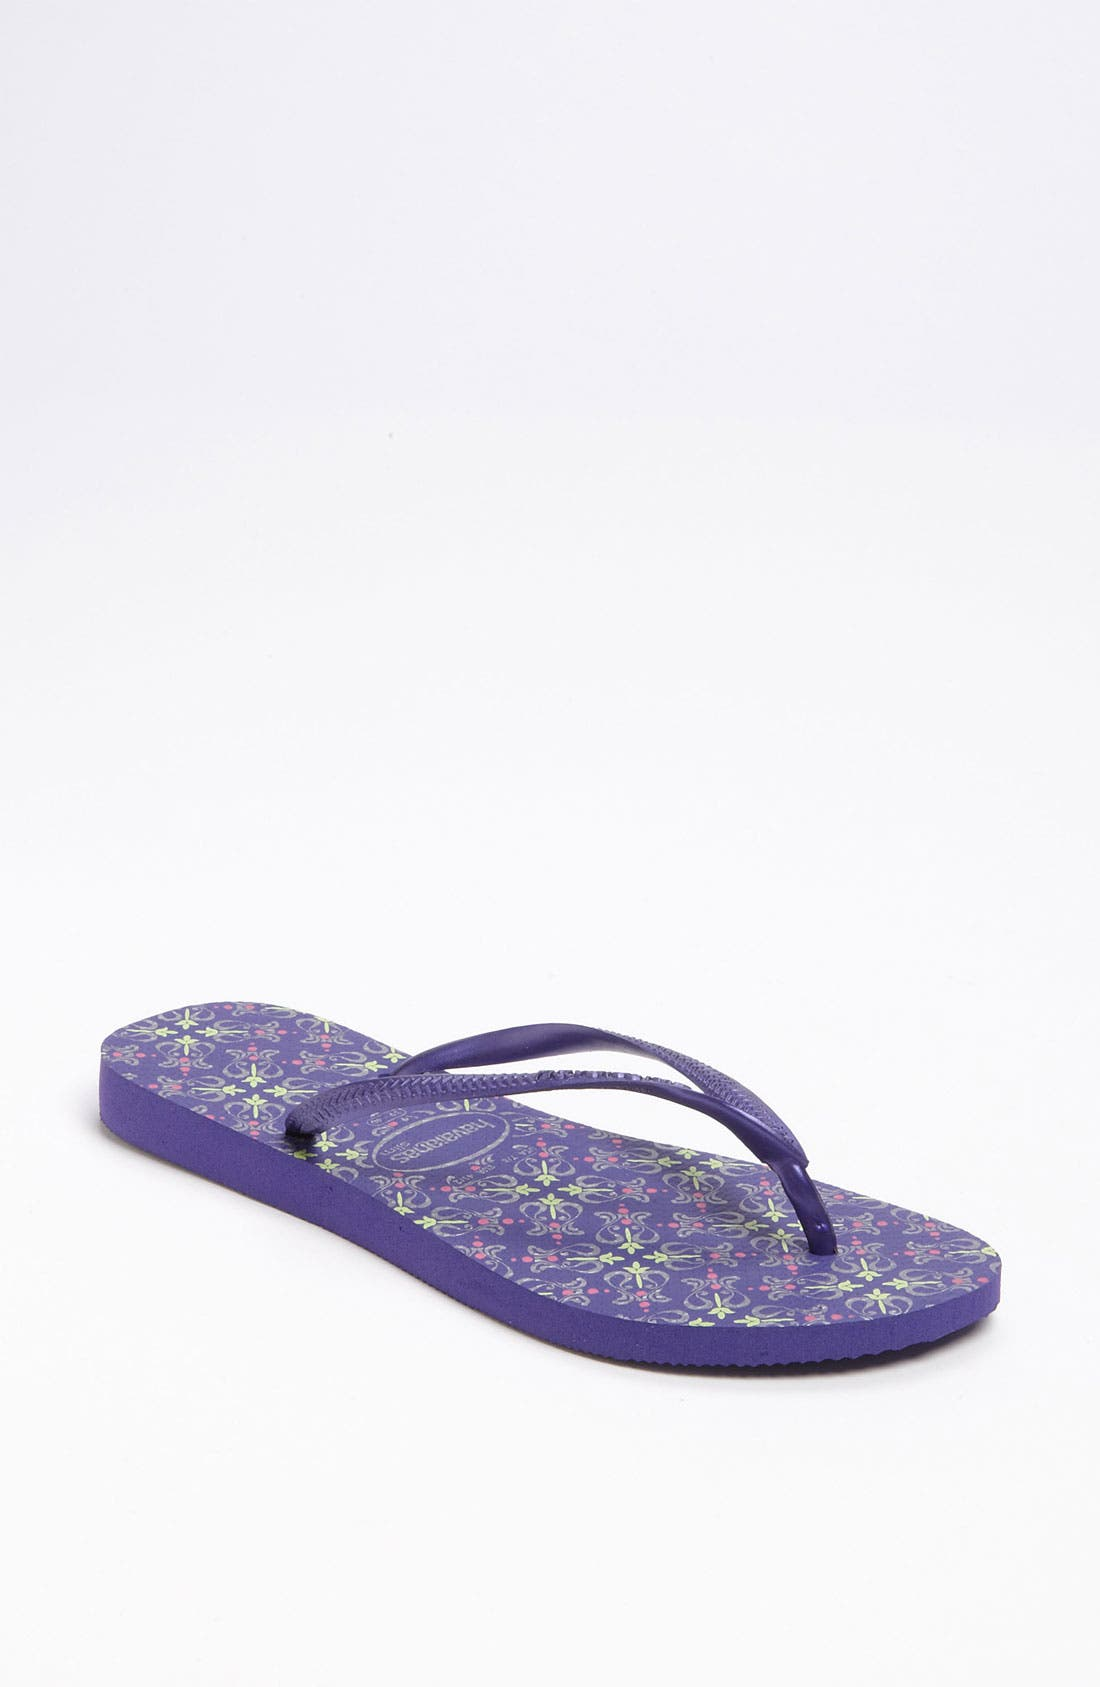 Alternate Image 1 Selected - Havaianas 'Slim Trendy' Flip Flop (Women)